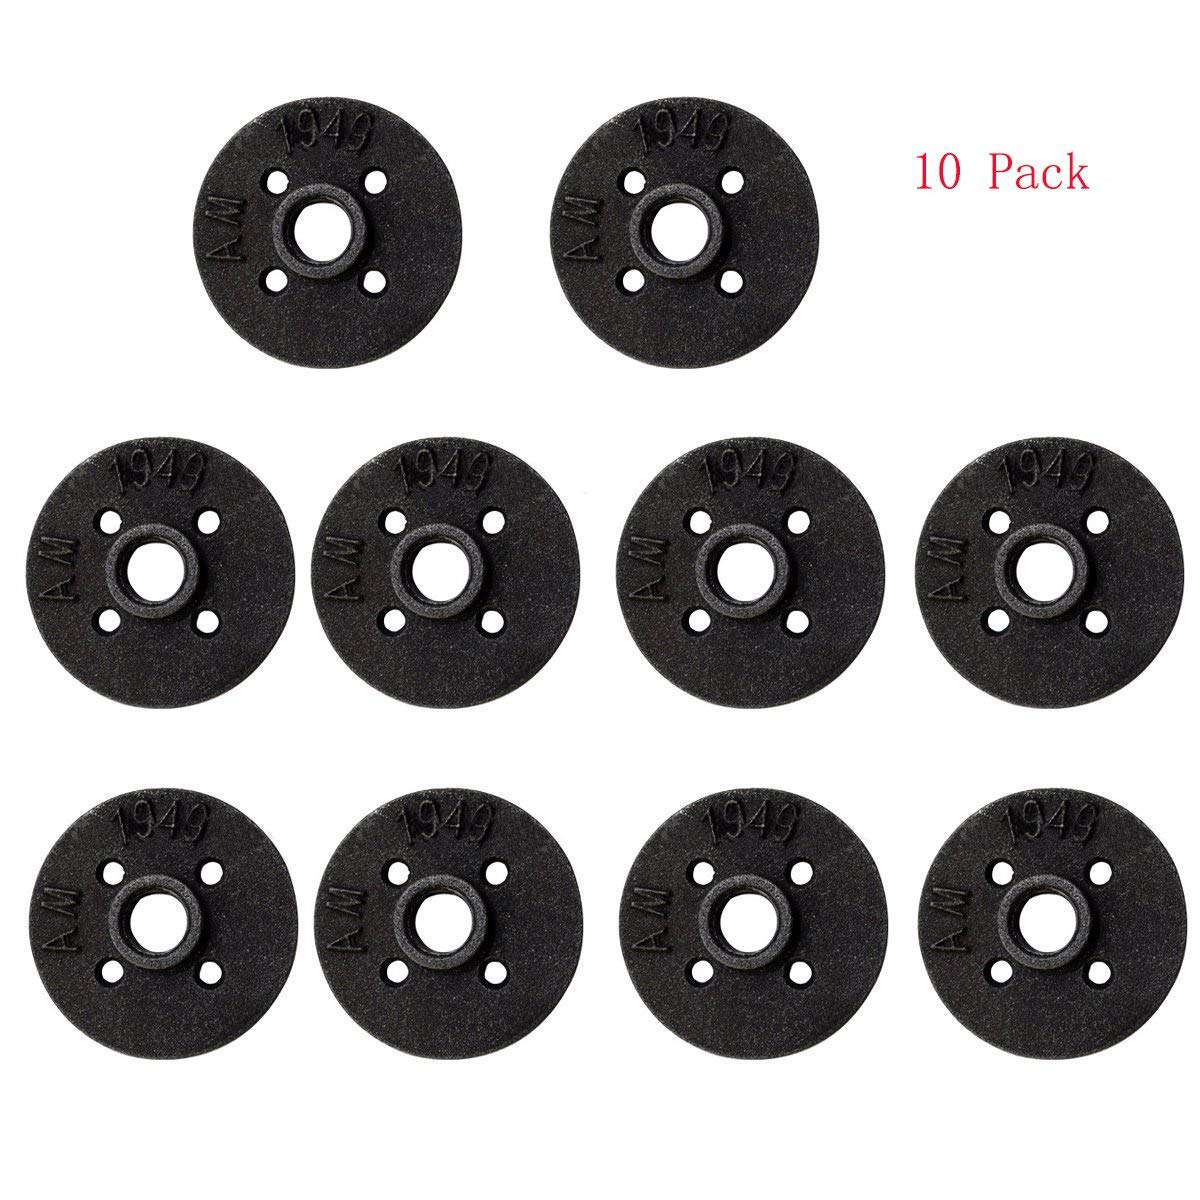 """10-Pack Black Malleable Iron Floor Flange Pipe Fittings, Perfect for Industrial Pipe Furniture and DIY Decor (1/2"""" Flange)"""